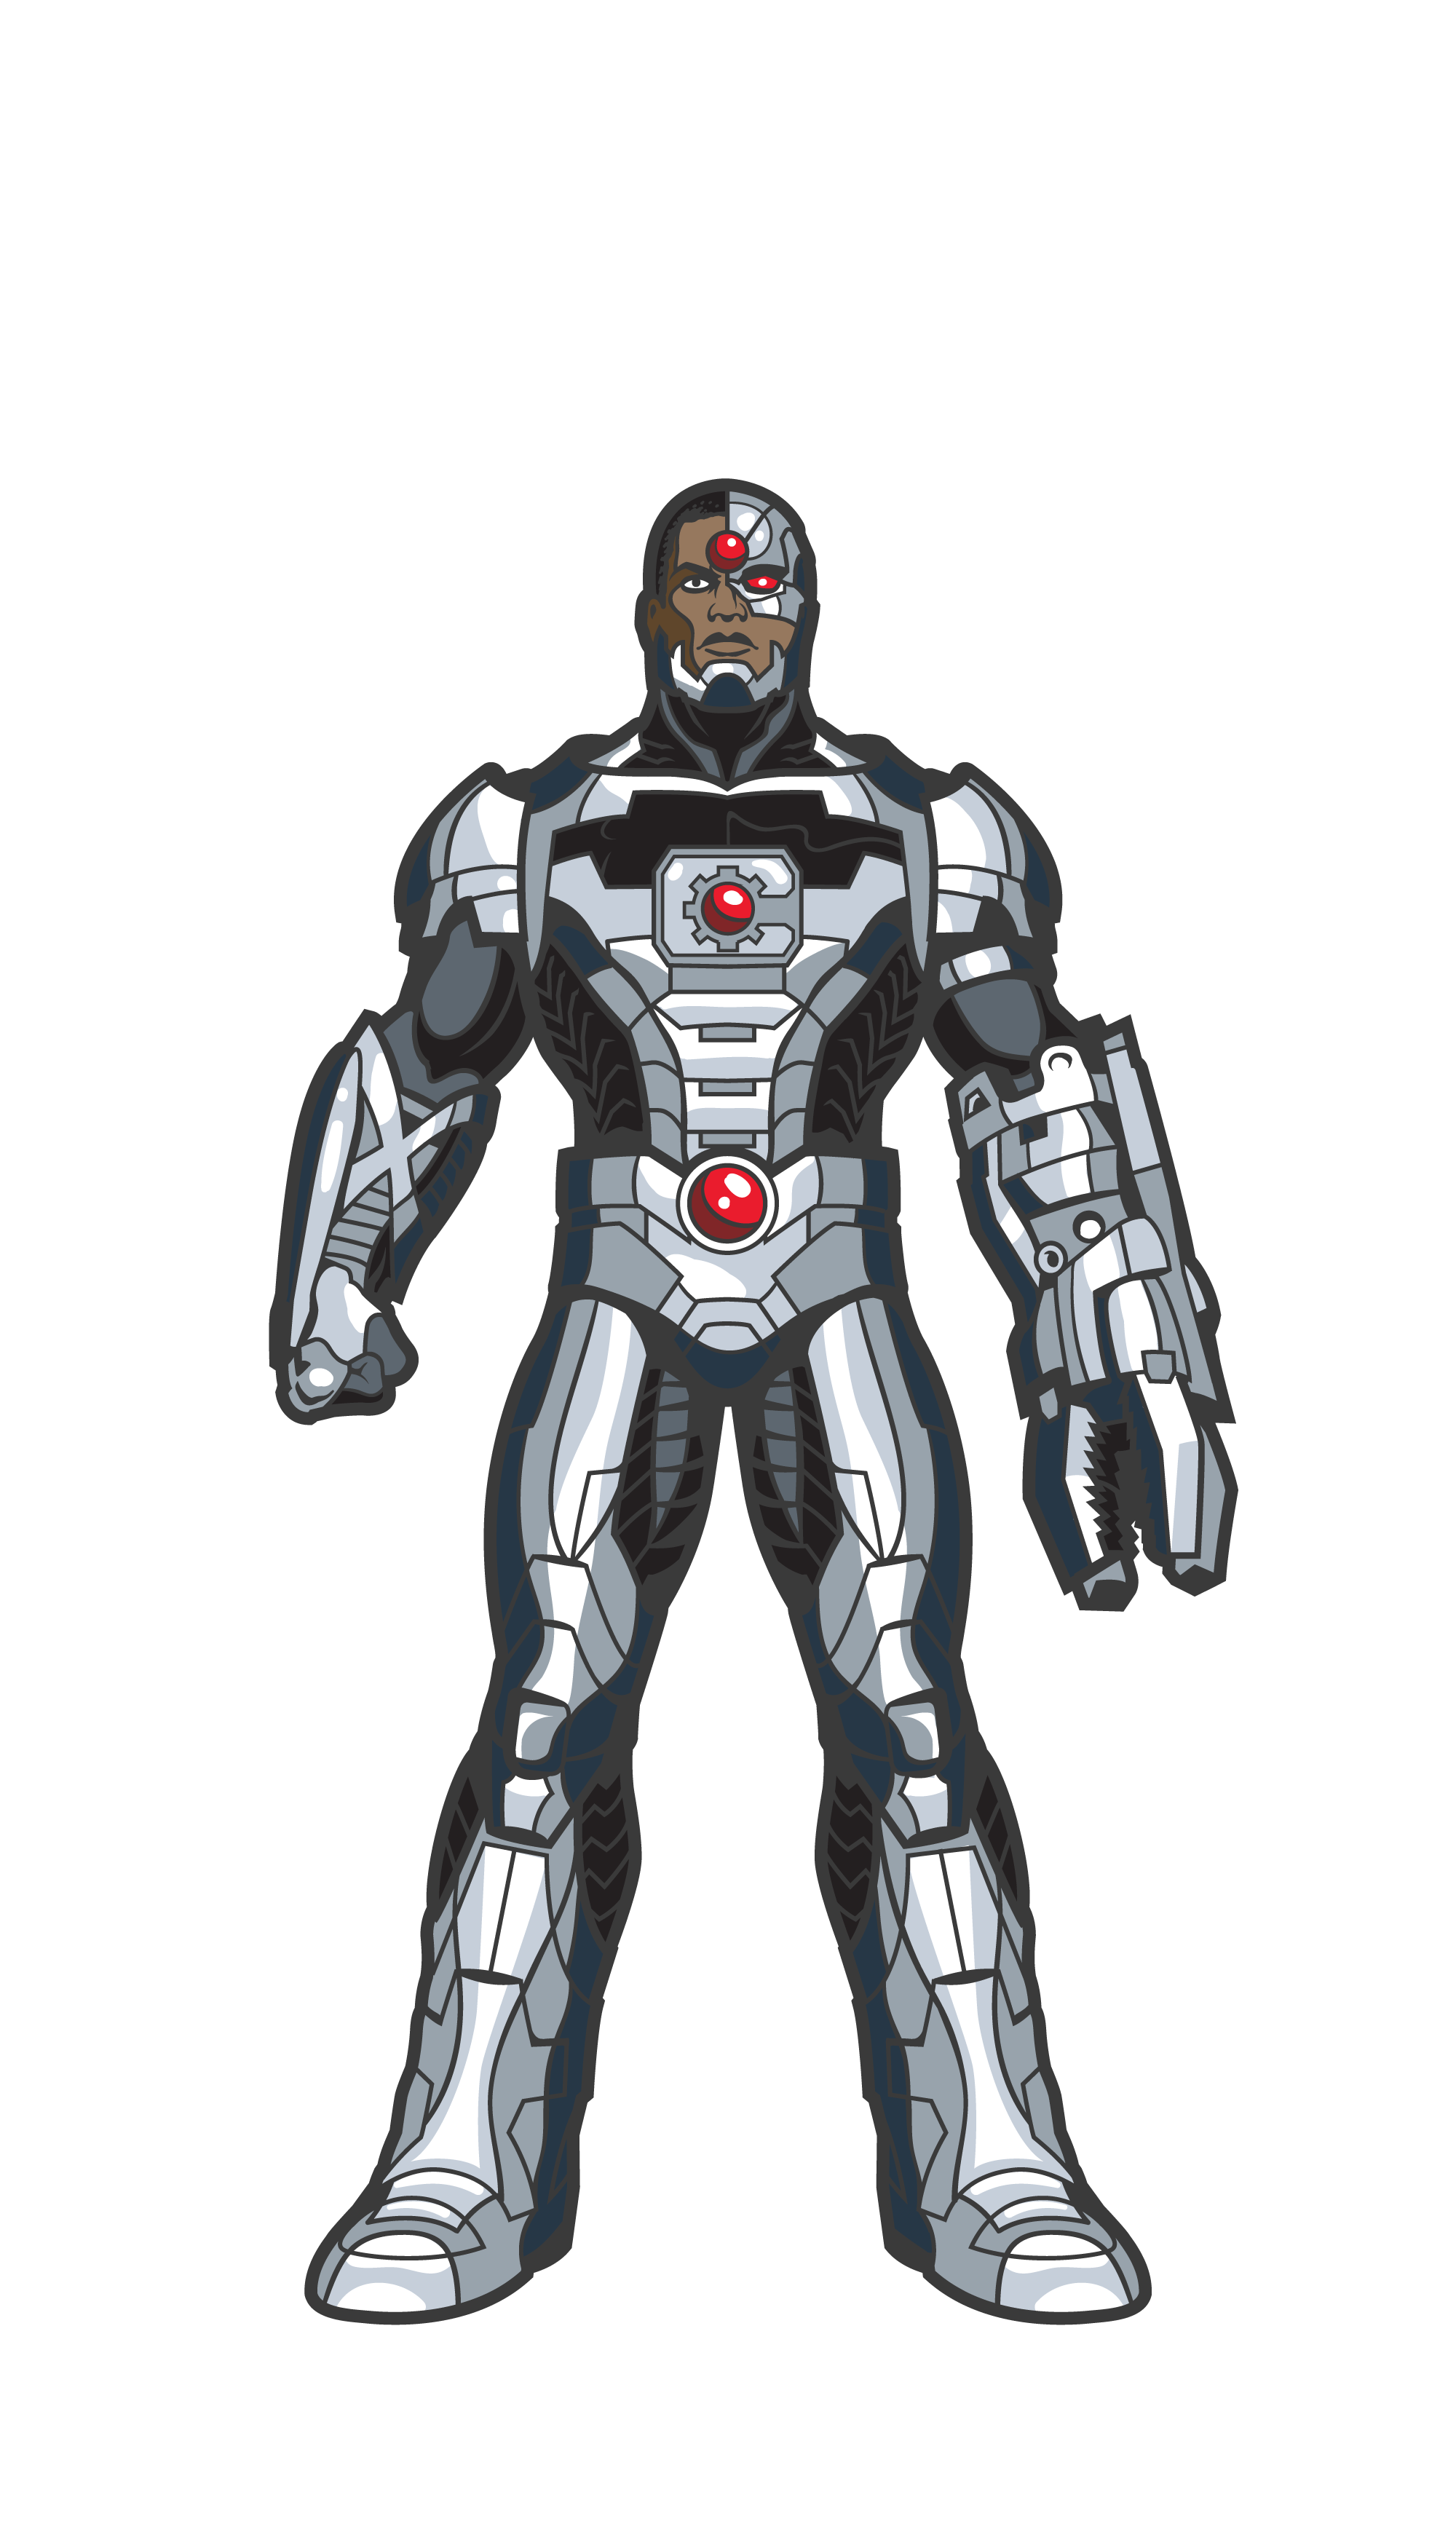 FiGPiN_50_Cyborg_DC_JUSTICE_LEAGUE_PIN.png